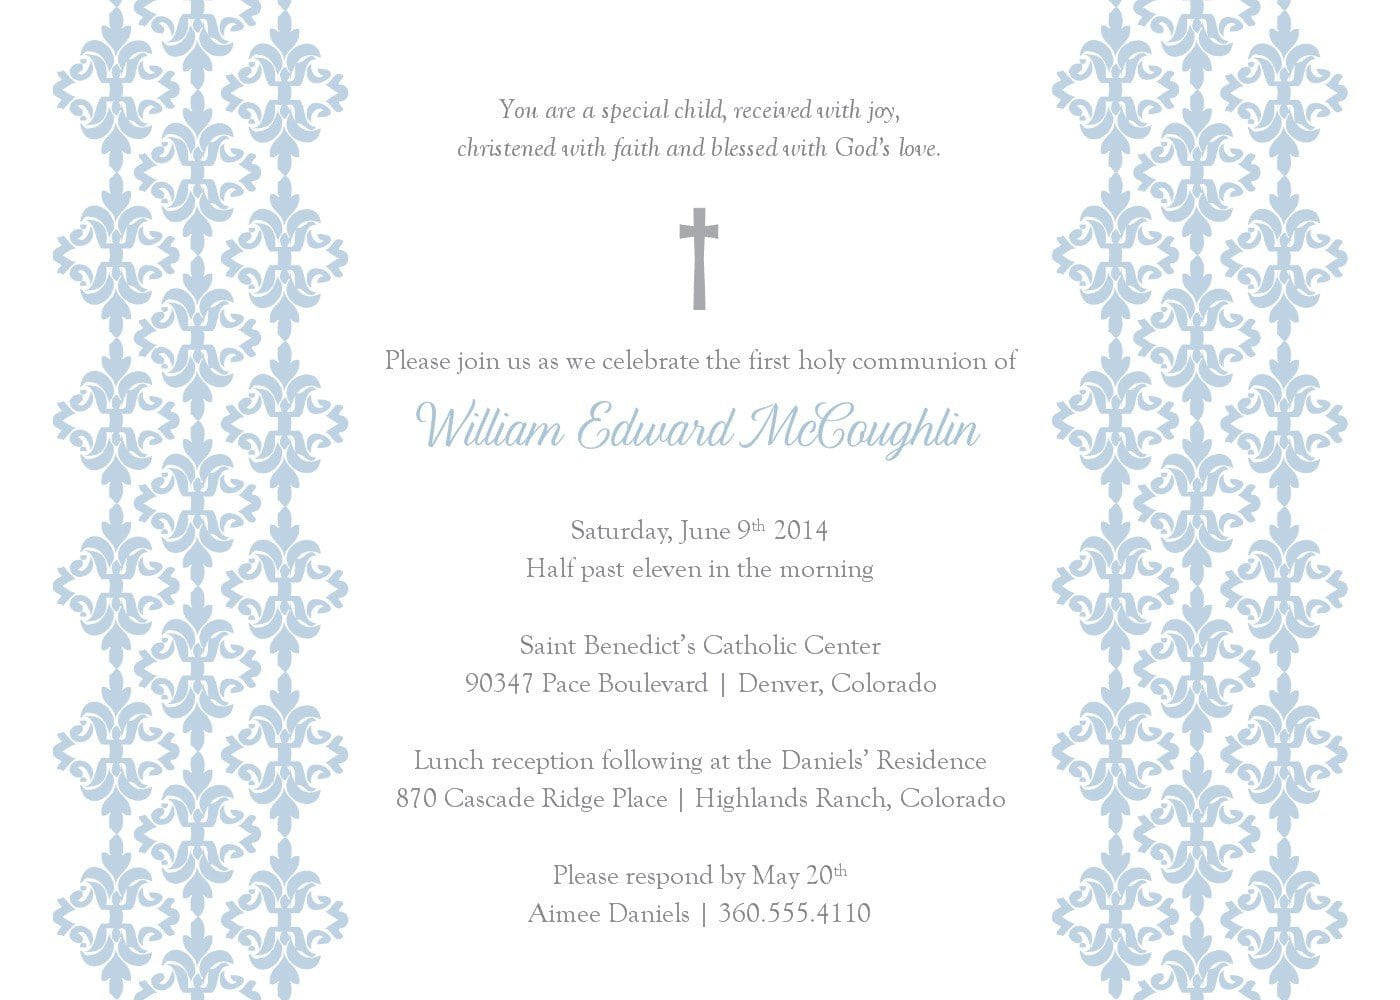 baptism invitation free template invitations card printable. posts ...